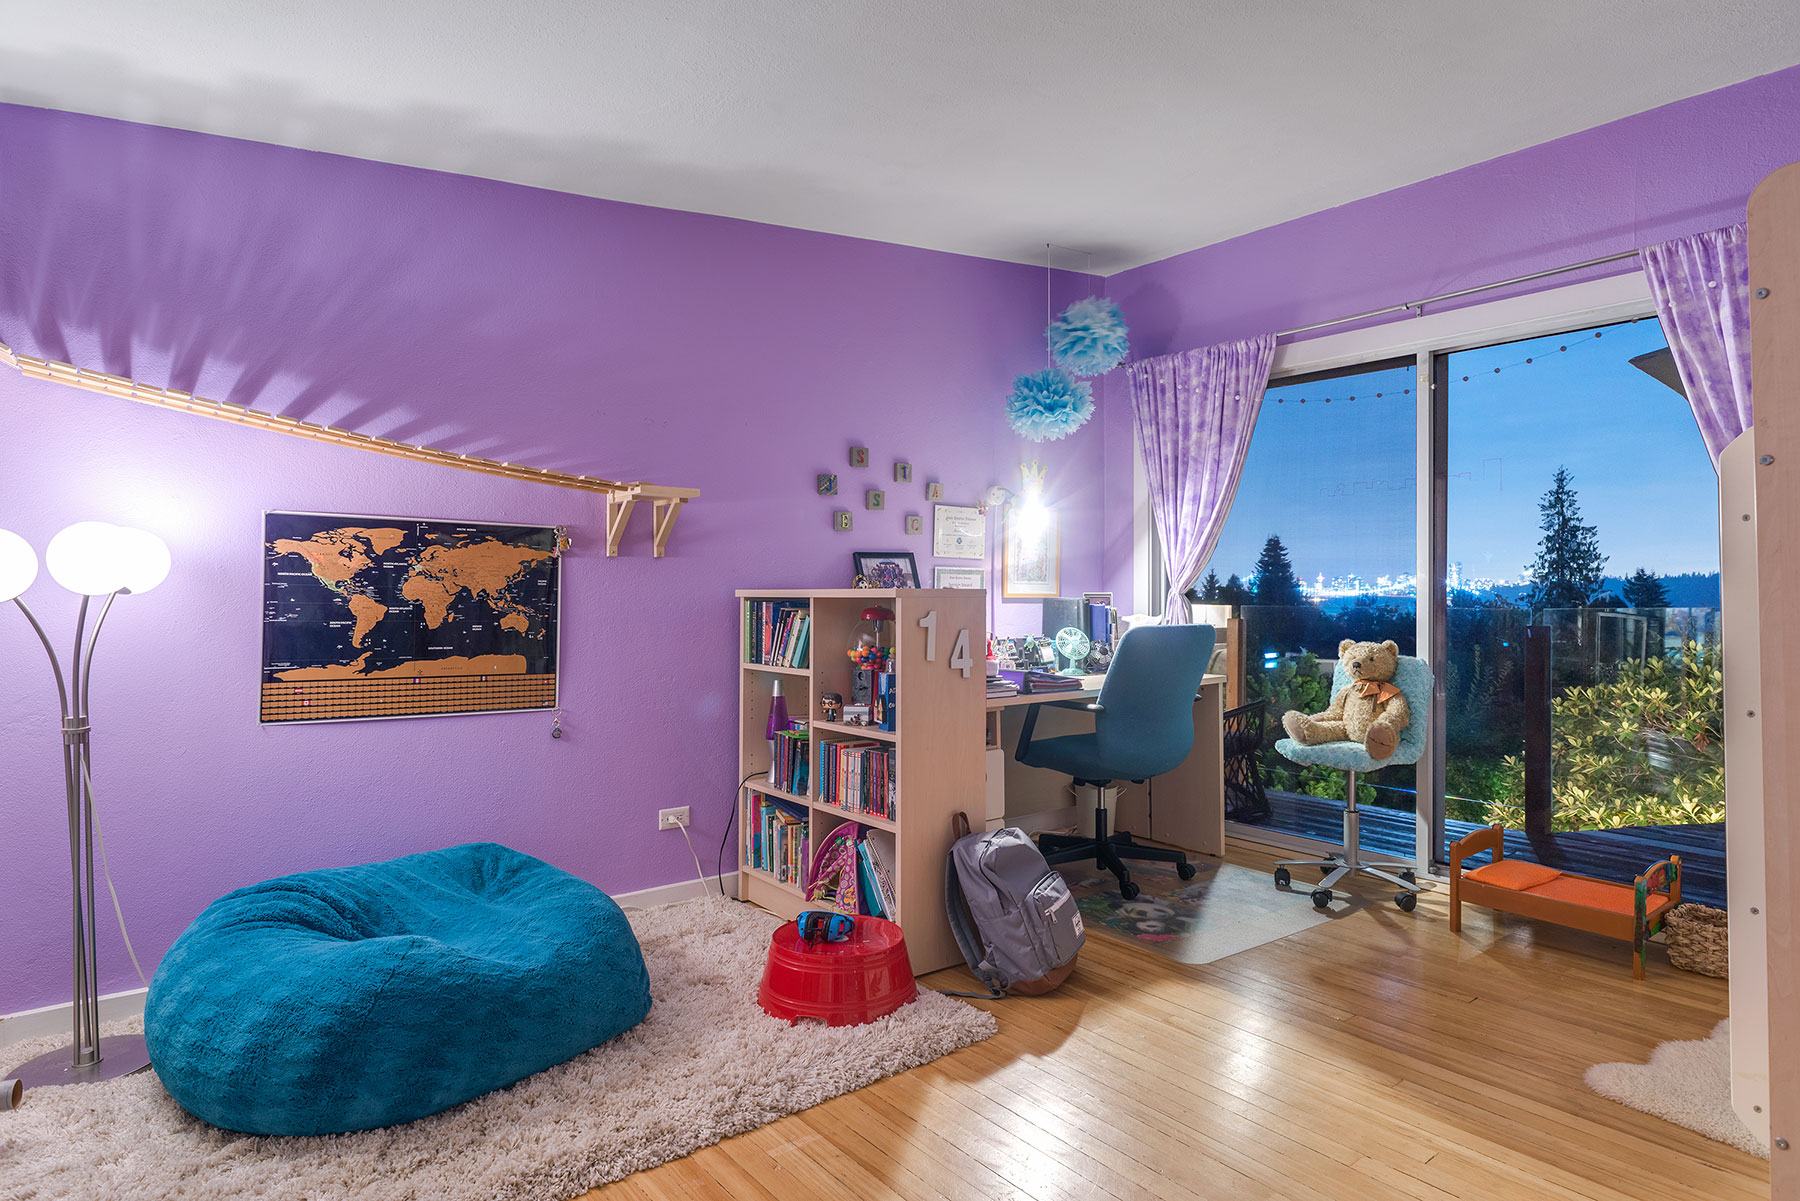 1460-Lawson-Ave-West-Vancouver-360hometours-23s.jpg